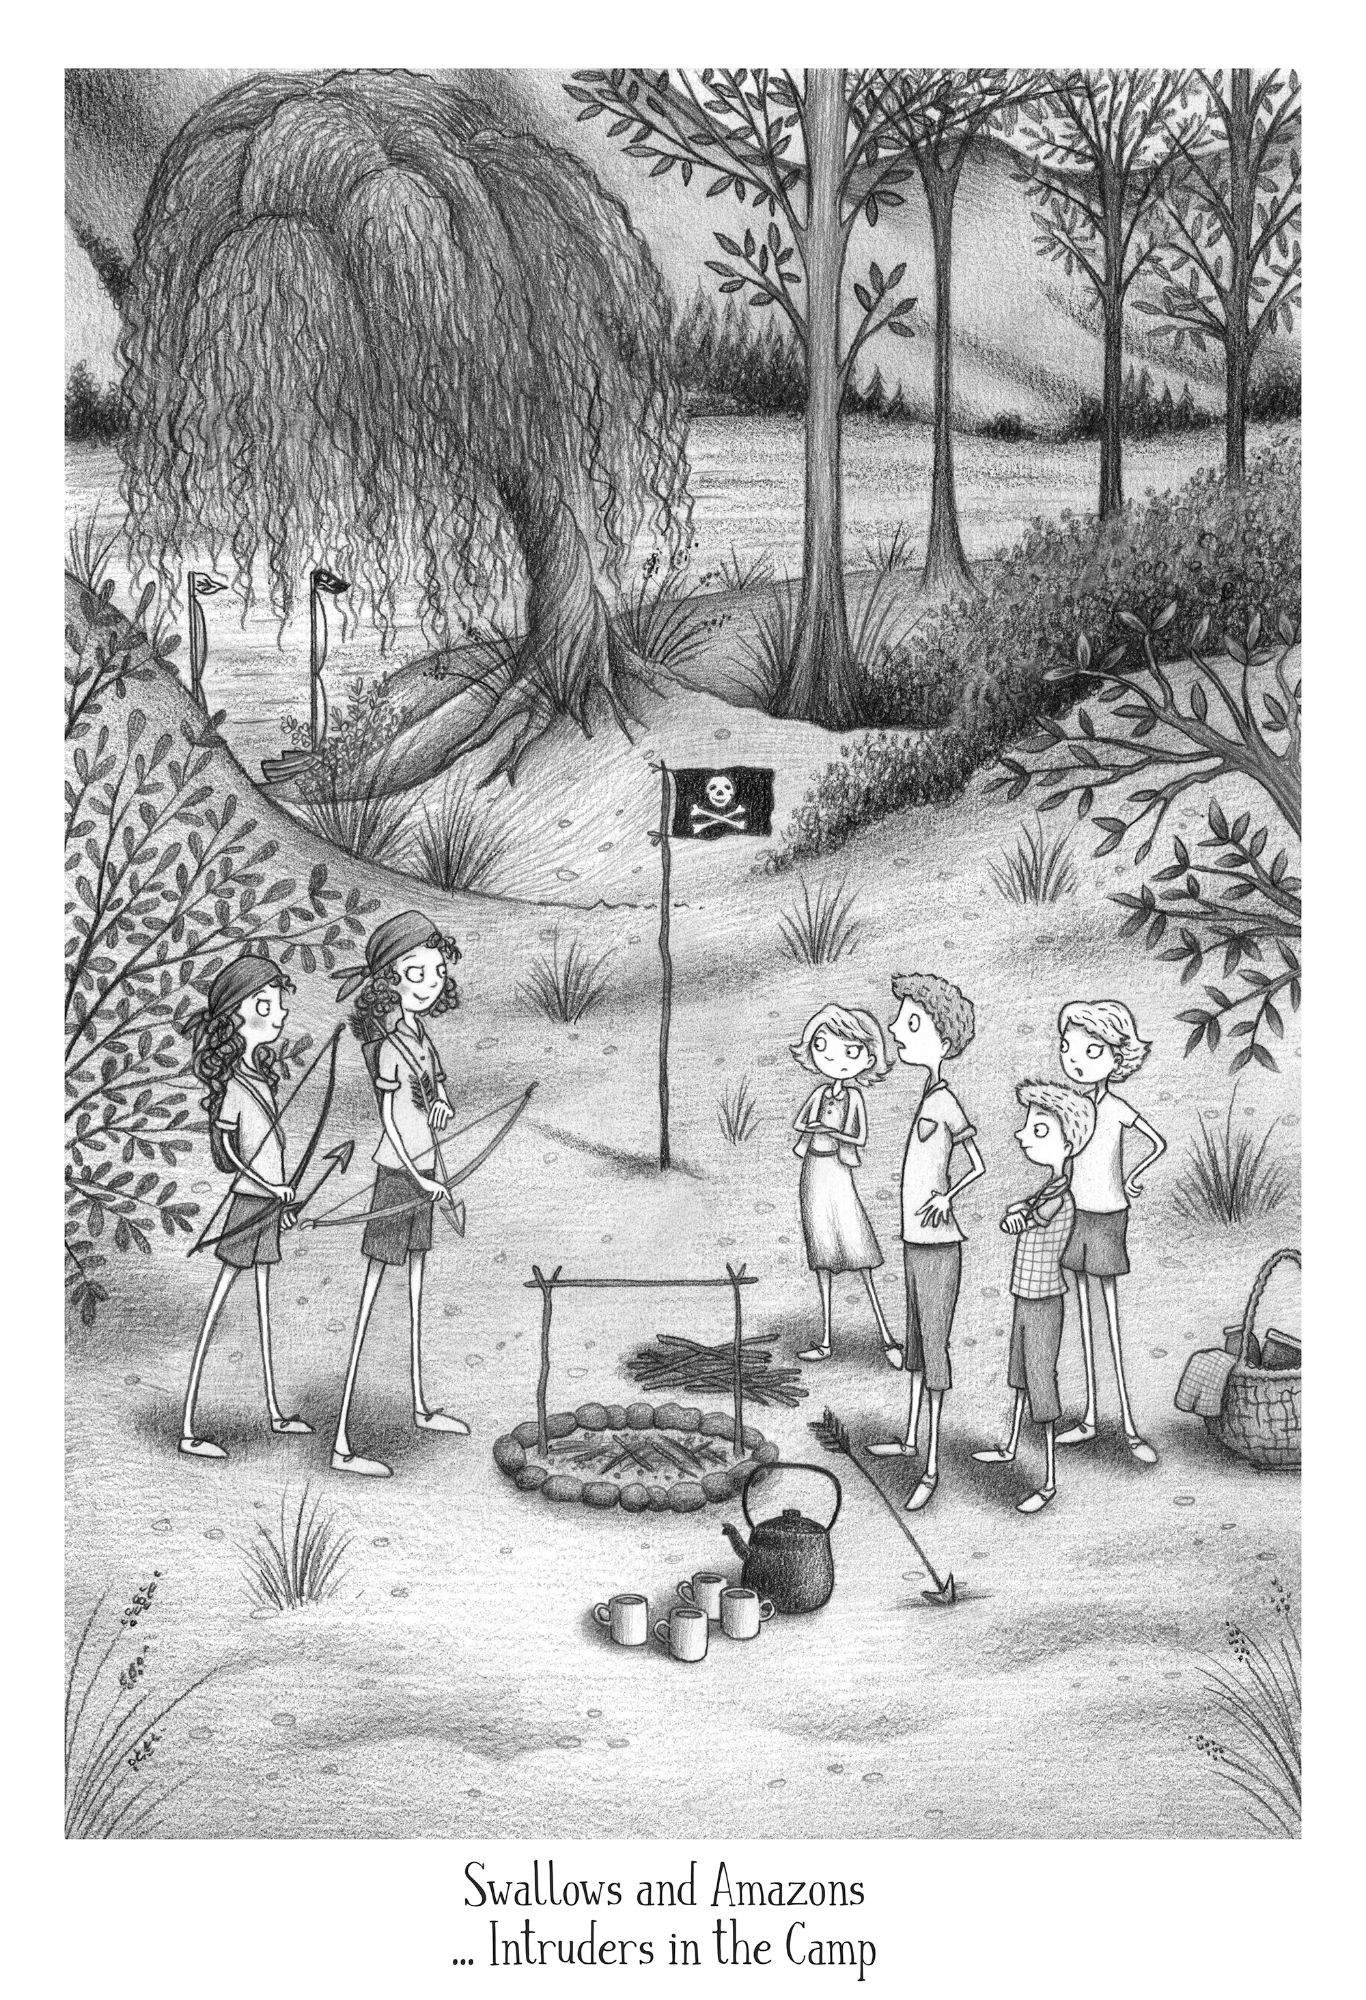 Swallows and Amazons illustration - Intruders in the Camp!